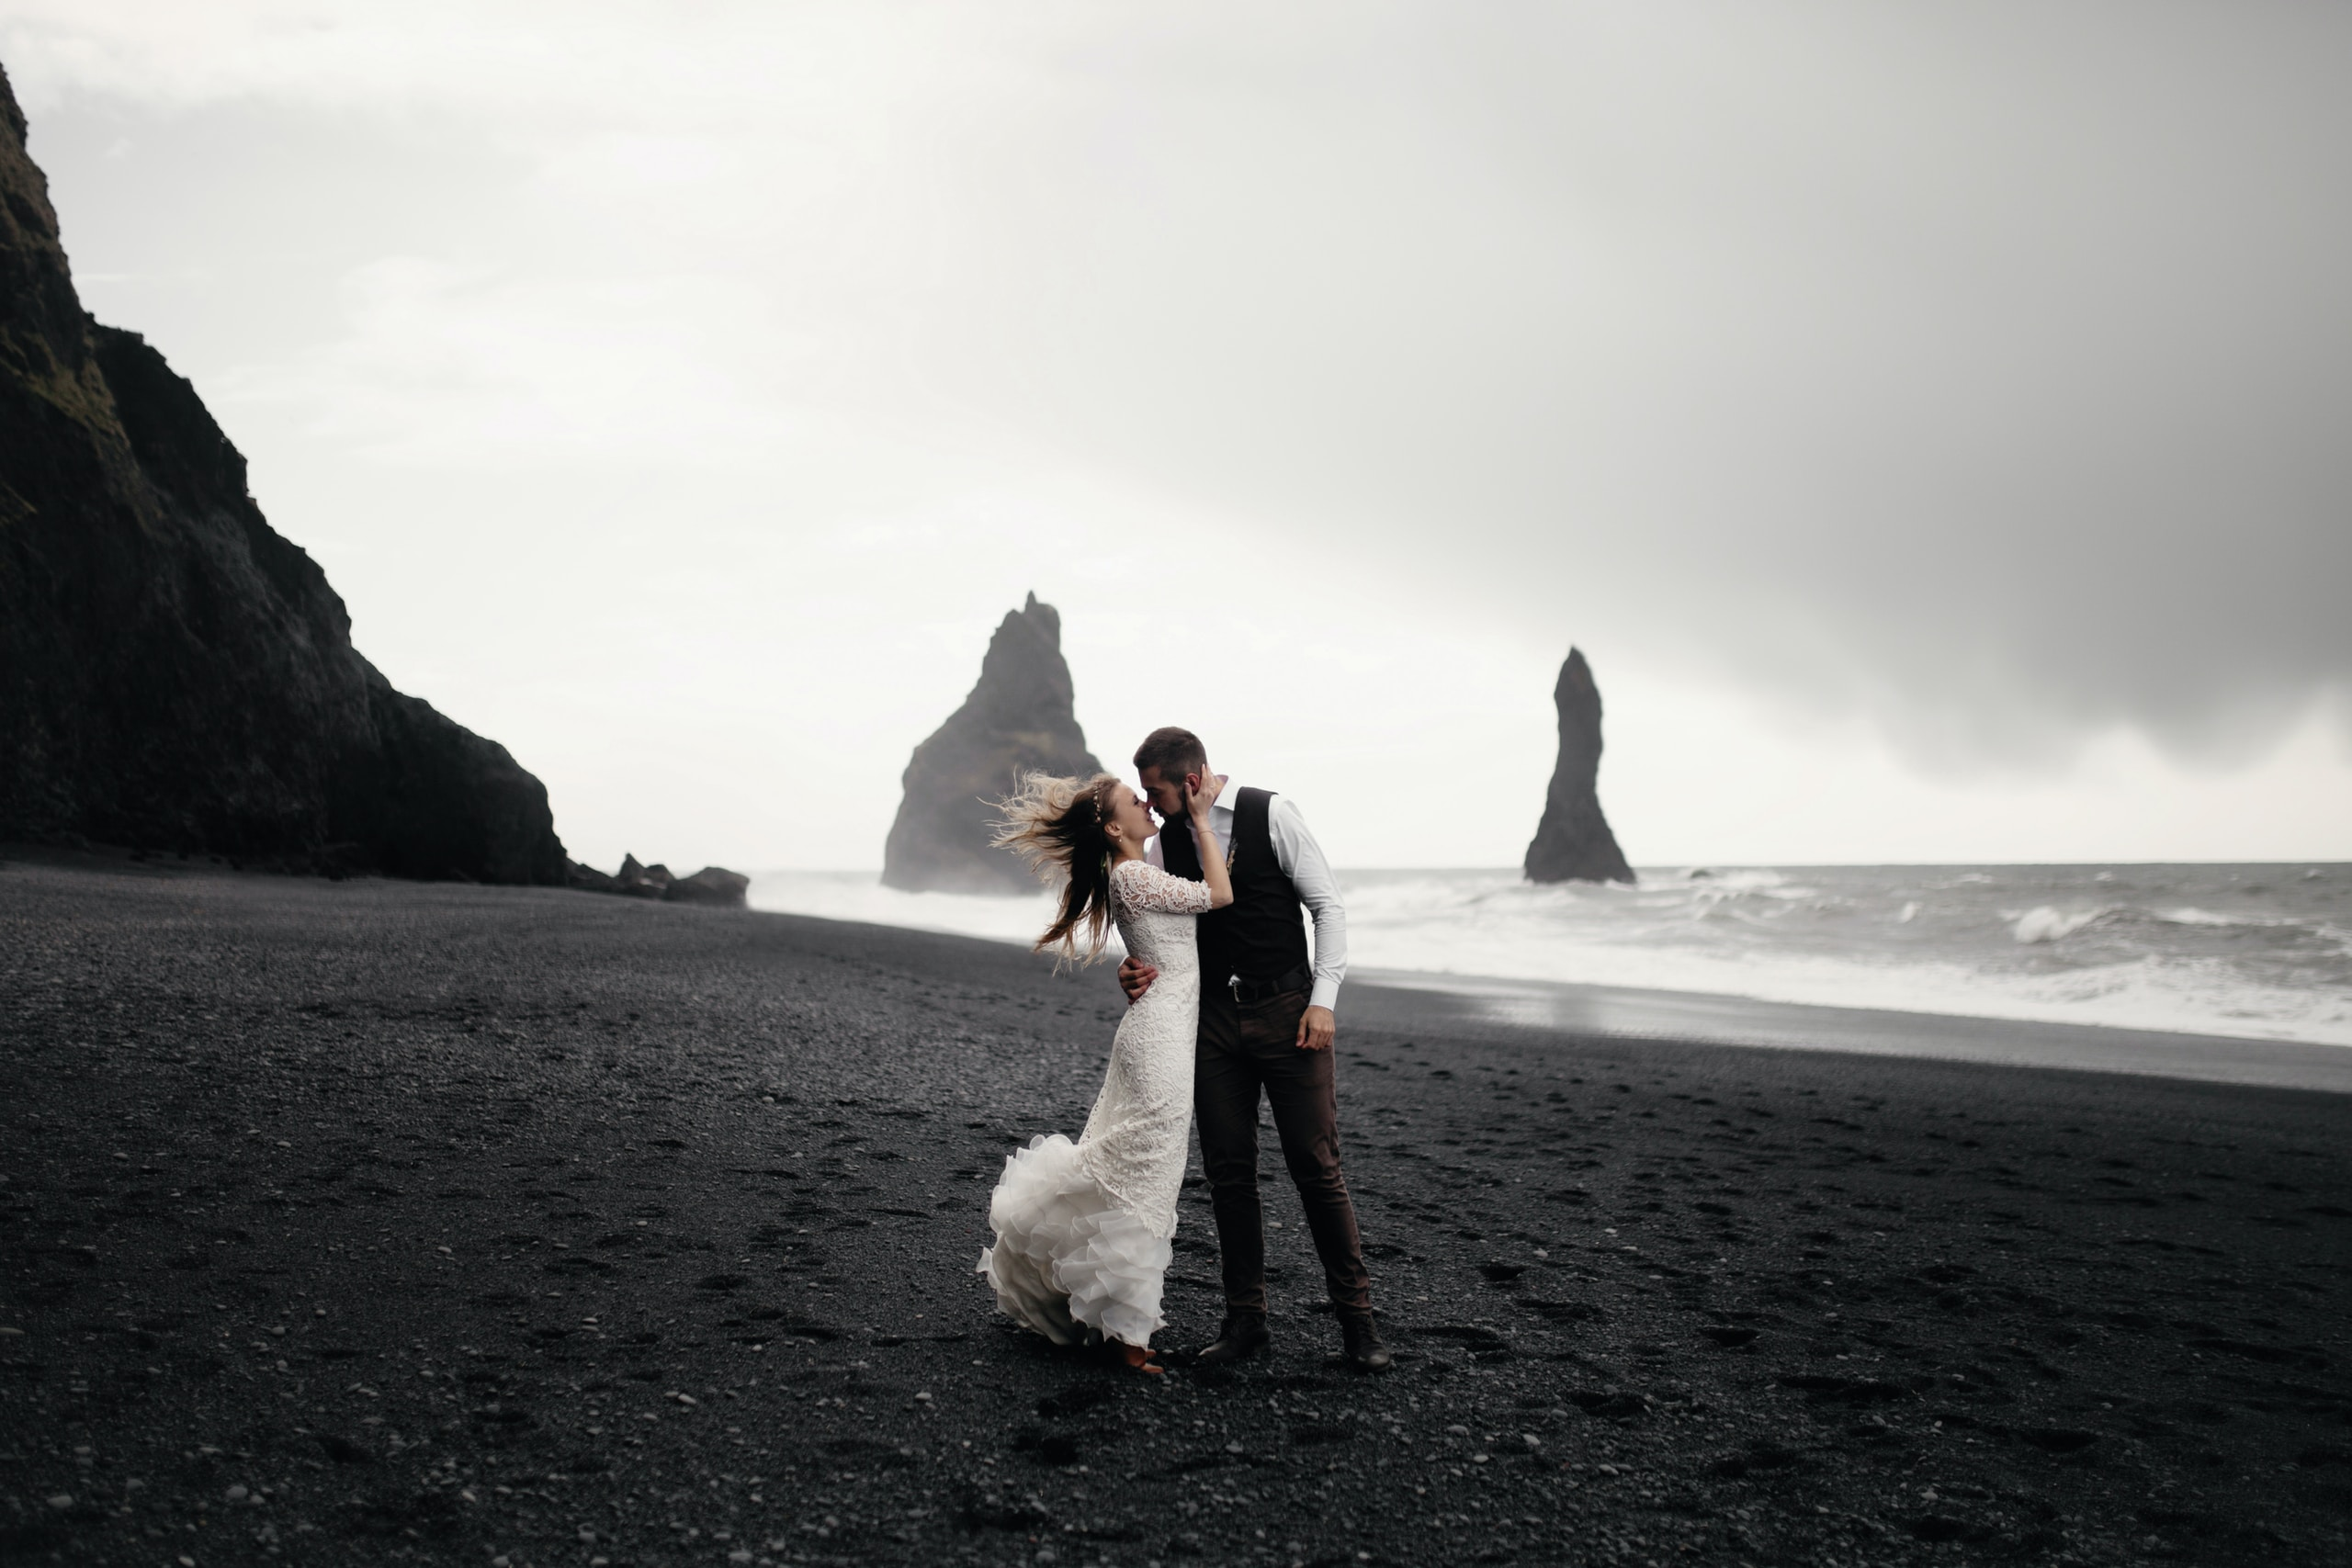 How to Choose the Perfect Wedding Photographs?